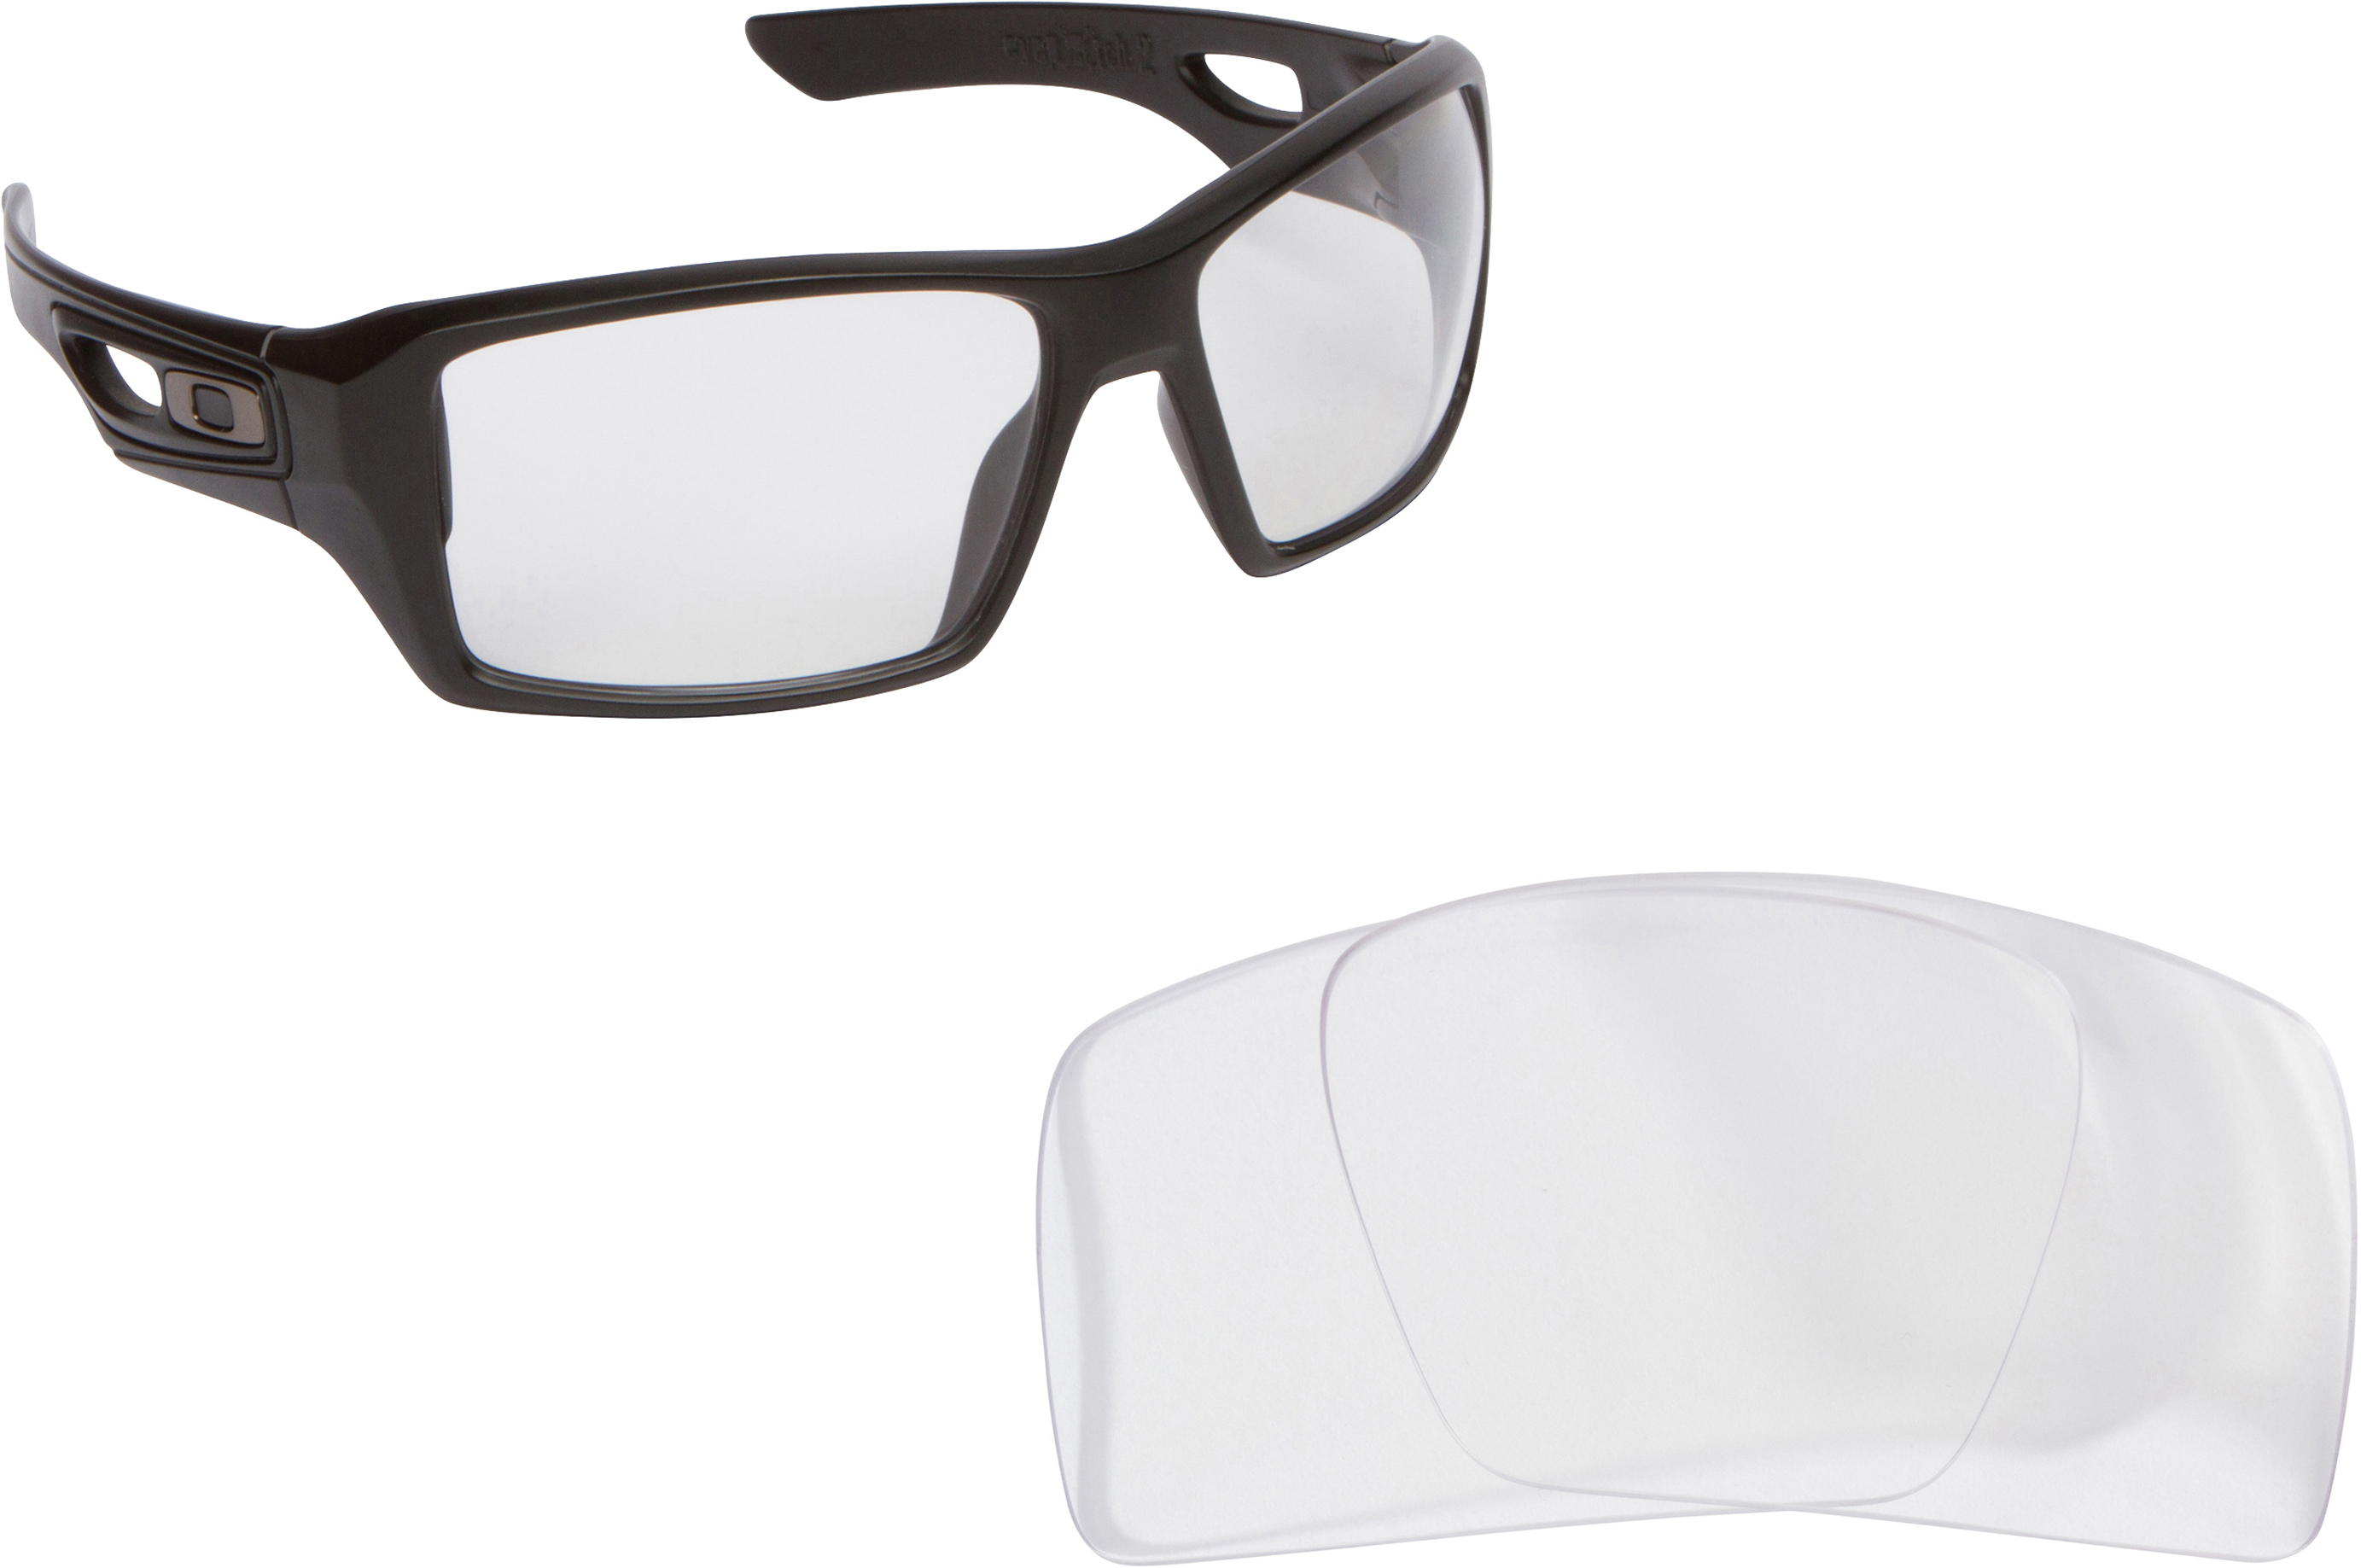 8200ae3f38 Eyepatch 2 Replacement Lenses Black   Crystal Clear by SEEK fits OAKLEY -  Walmart.com